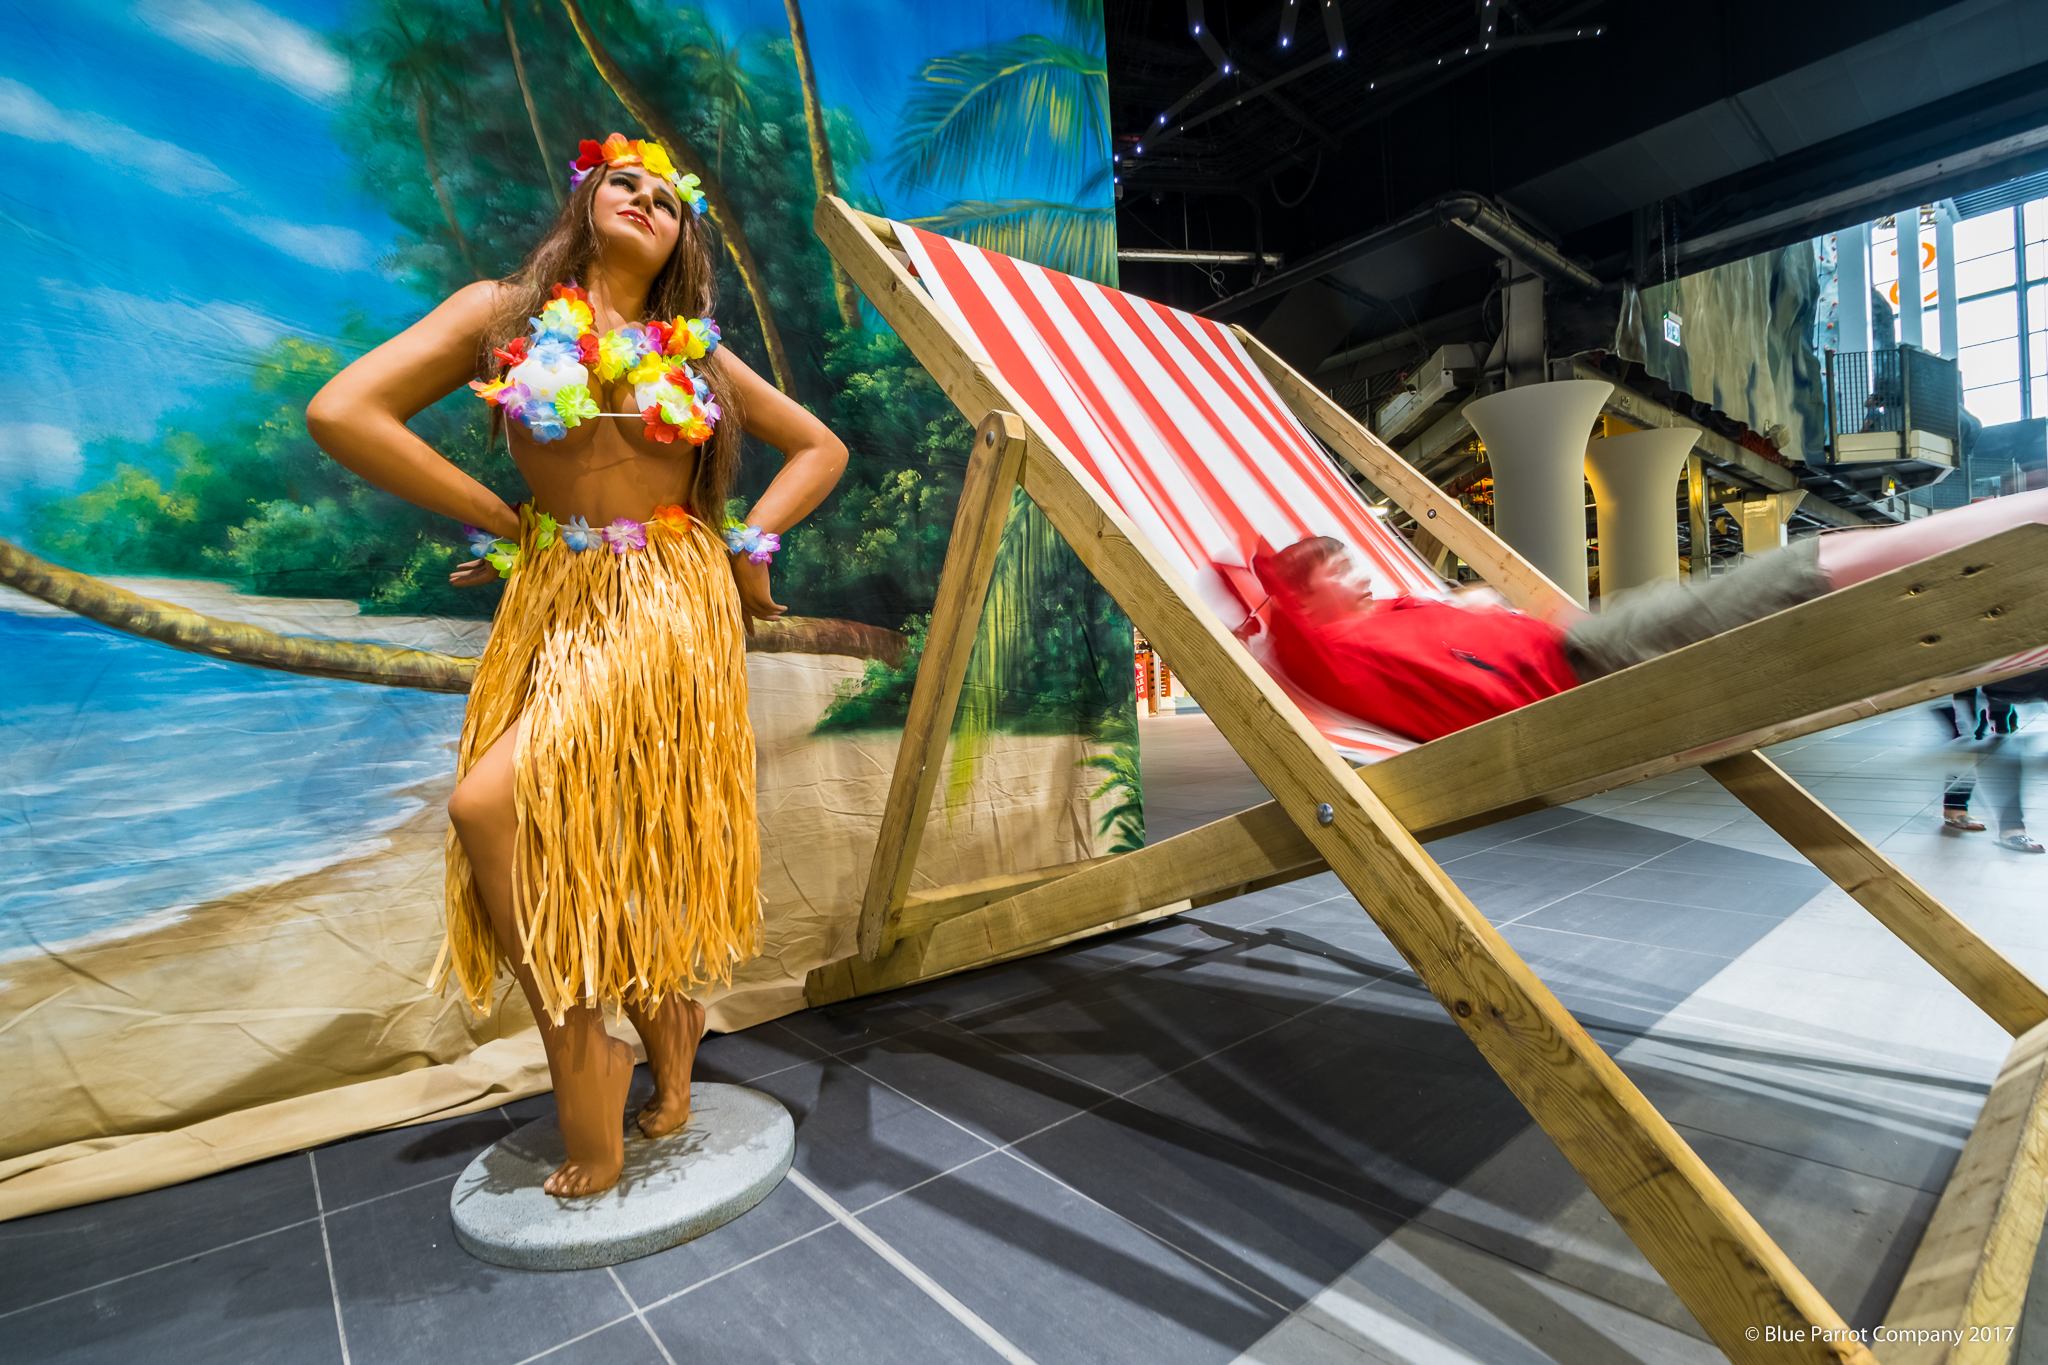 Hawaiian Woman and Deck Chairs